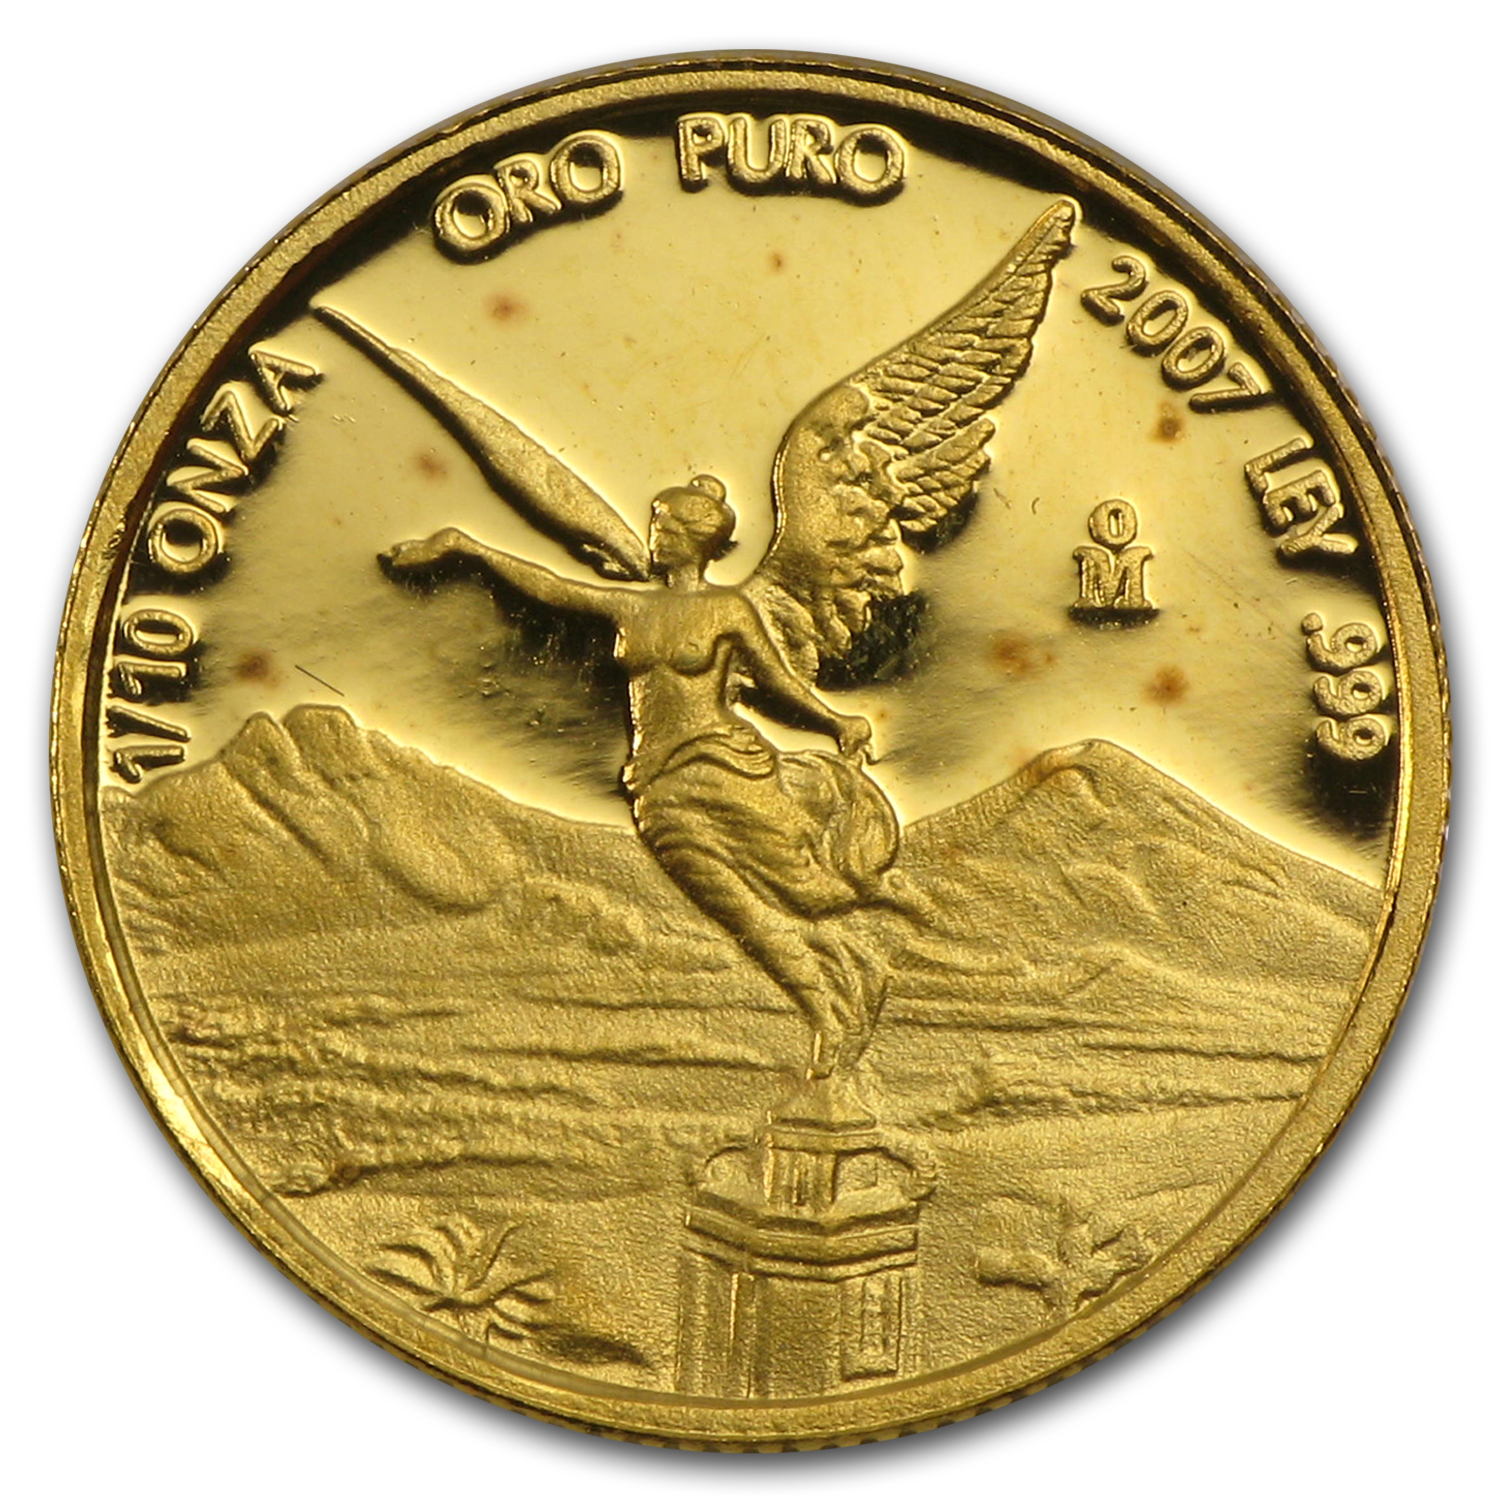 2007 Mexico 1/10 oz Proof Gold Libertad